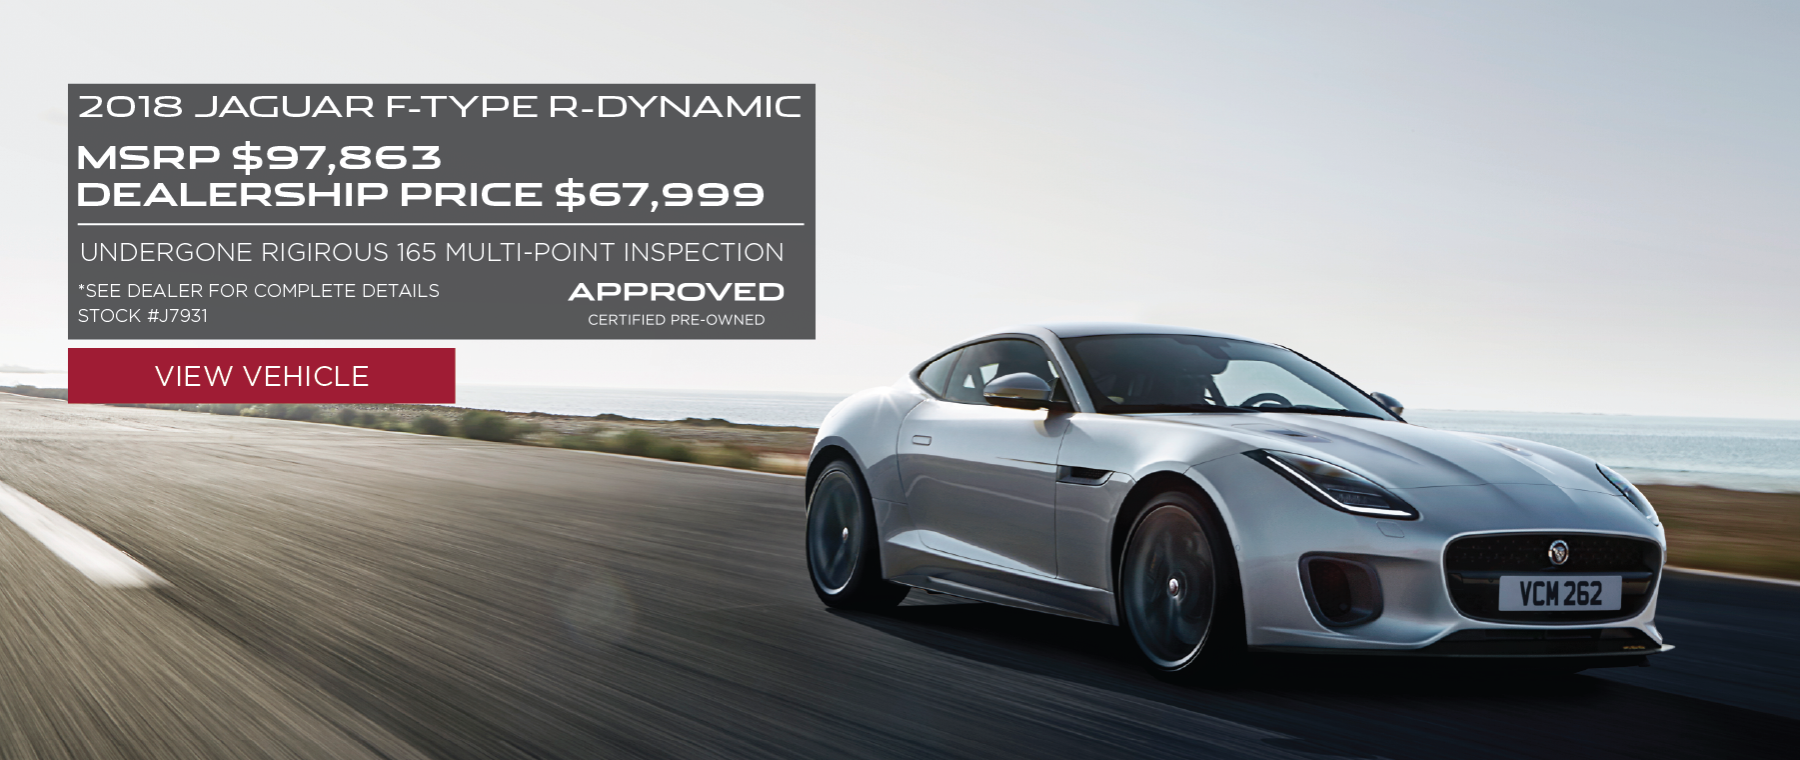 White 2018 Jaguar F-TYPE on road with sunset in background. R-Dynamic. MSRP $63,308 Dealership price $44,999 Stock #J7931 . Click to view vehicle.